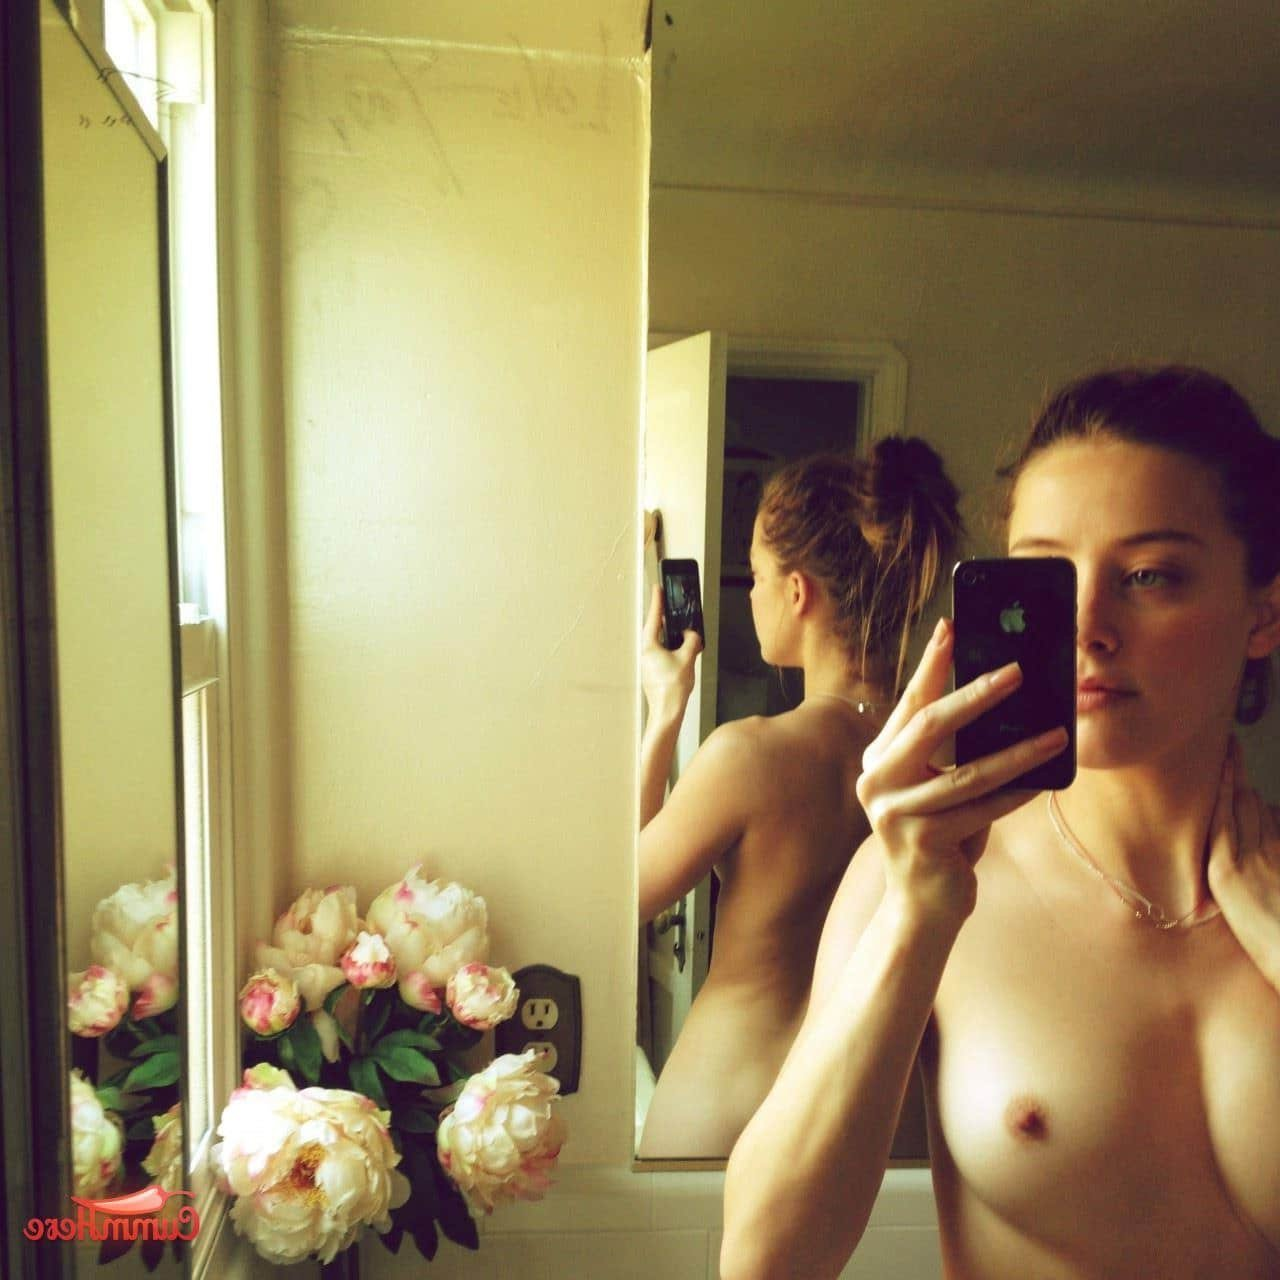 100 Pictures of Amber Heard Nude Leaked